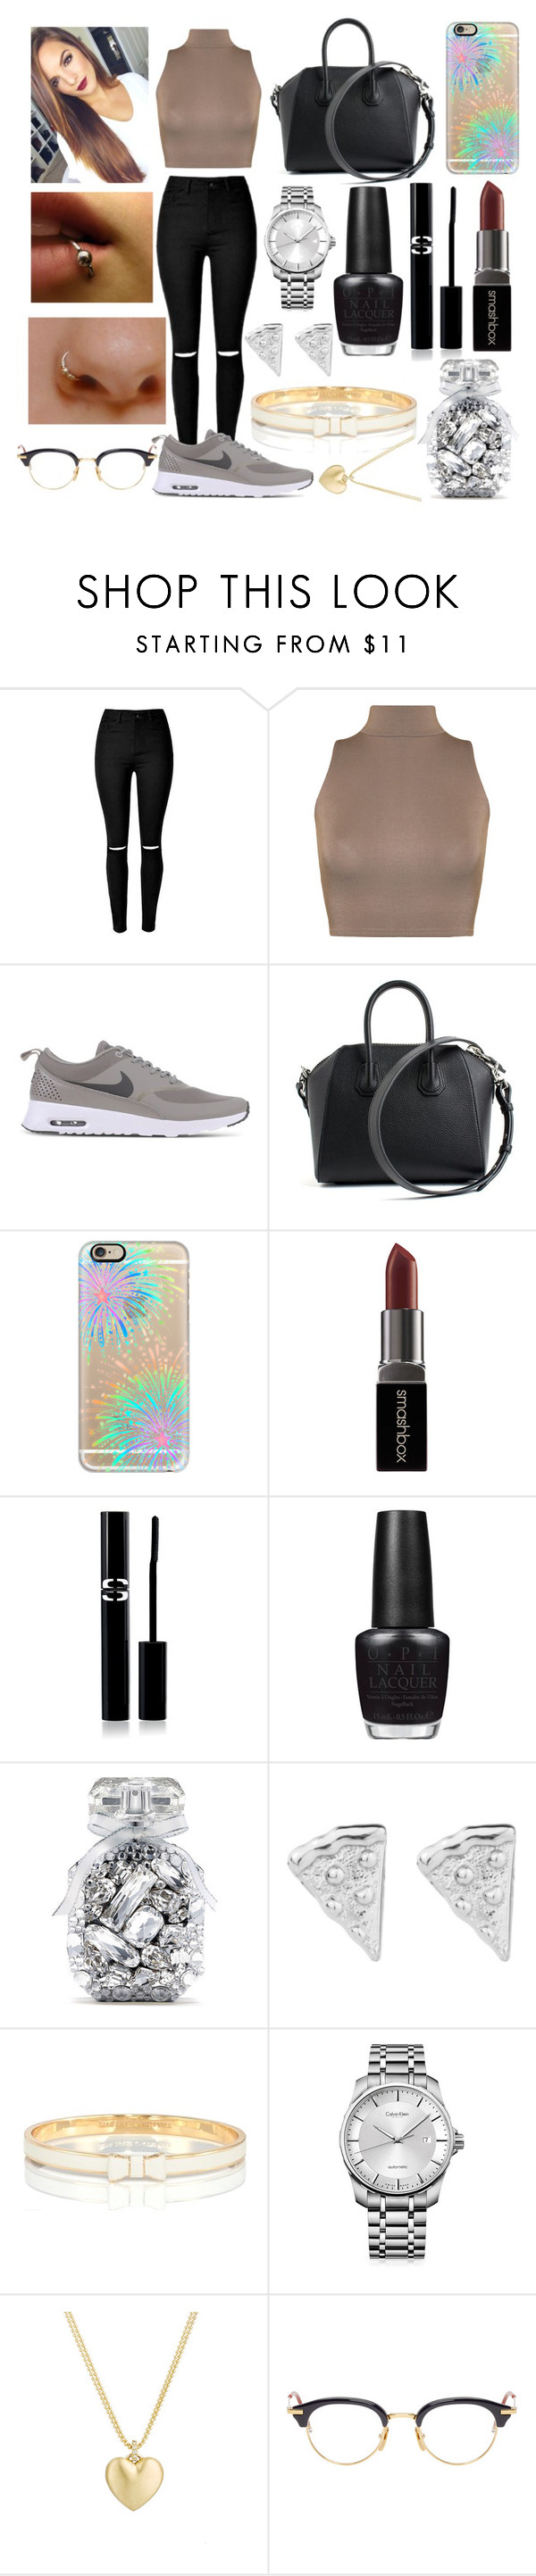 """""""tenue swag"""" by lululecuyer ❤ liked on Polyvore featuring WearAll, NIKE, Givenchy, Casetify, Smashbox, Sisley Paris, OPI, Victoria's Secret, Kate Spade and Calvin Klein"""